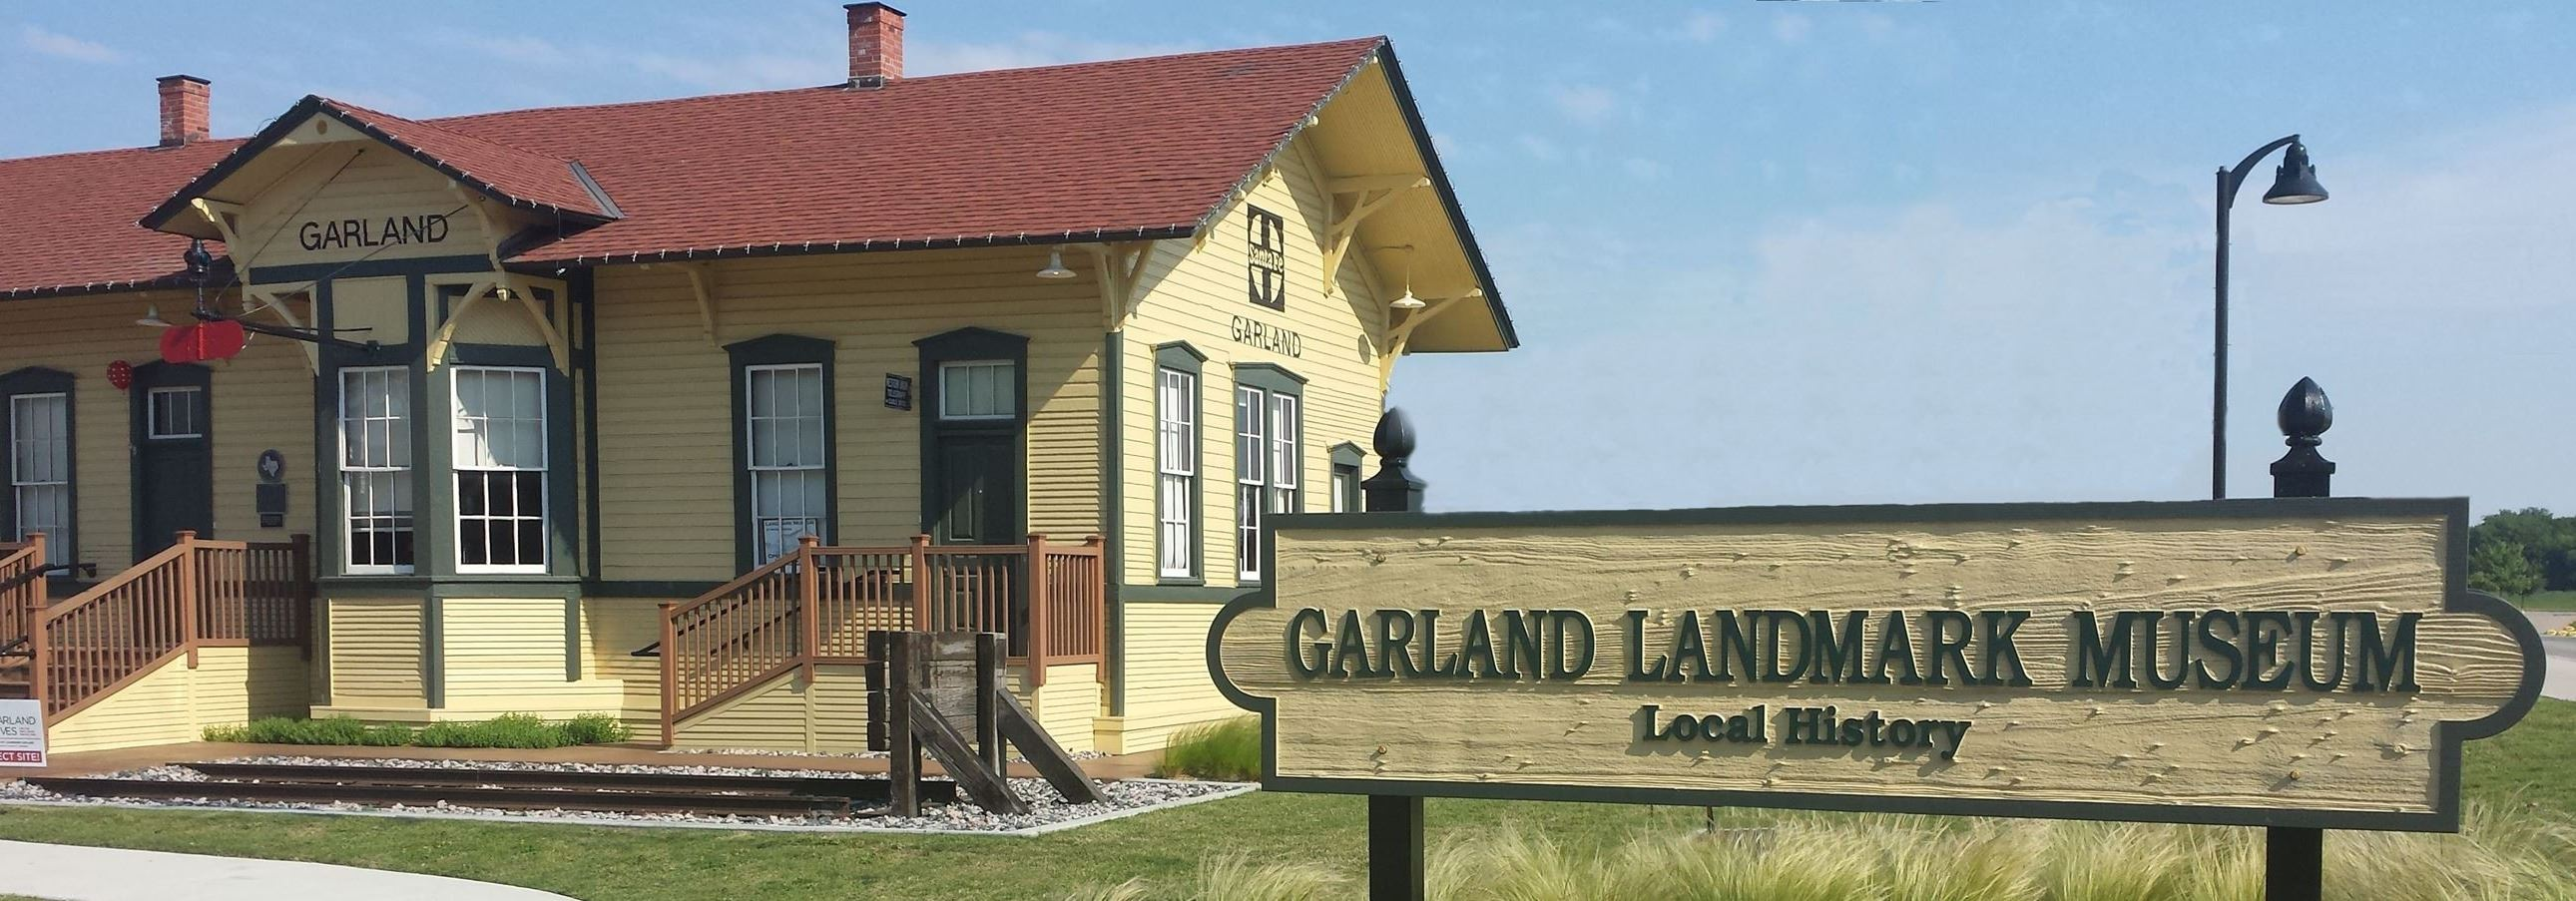 Garland Landmark Museum and sign